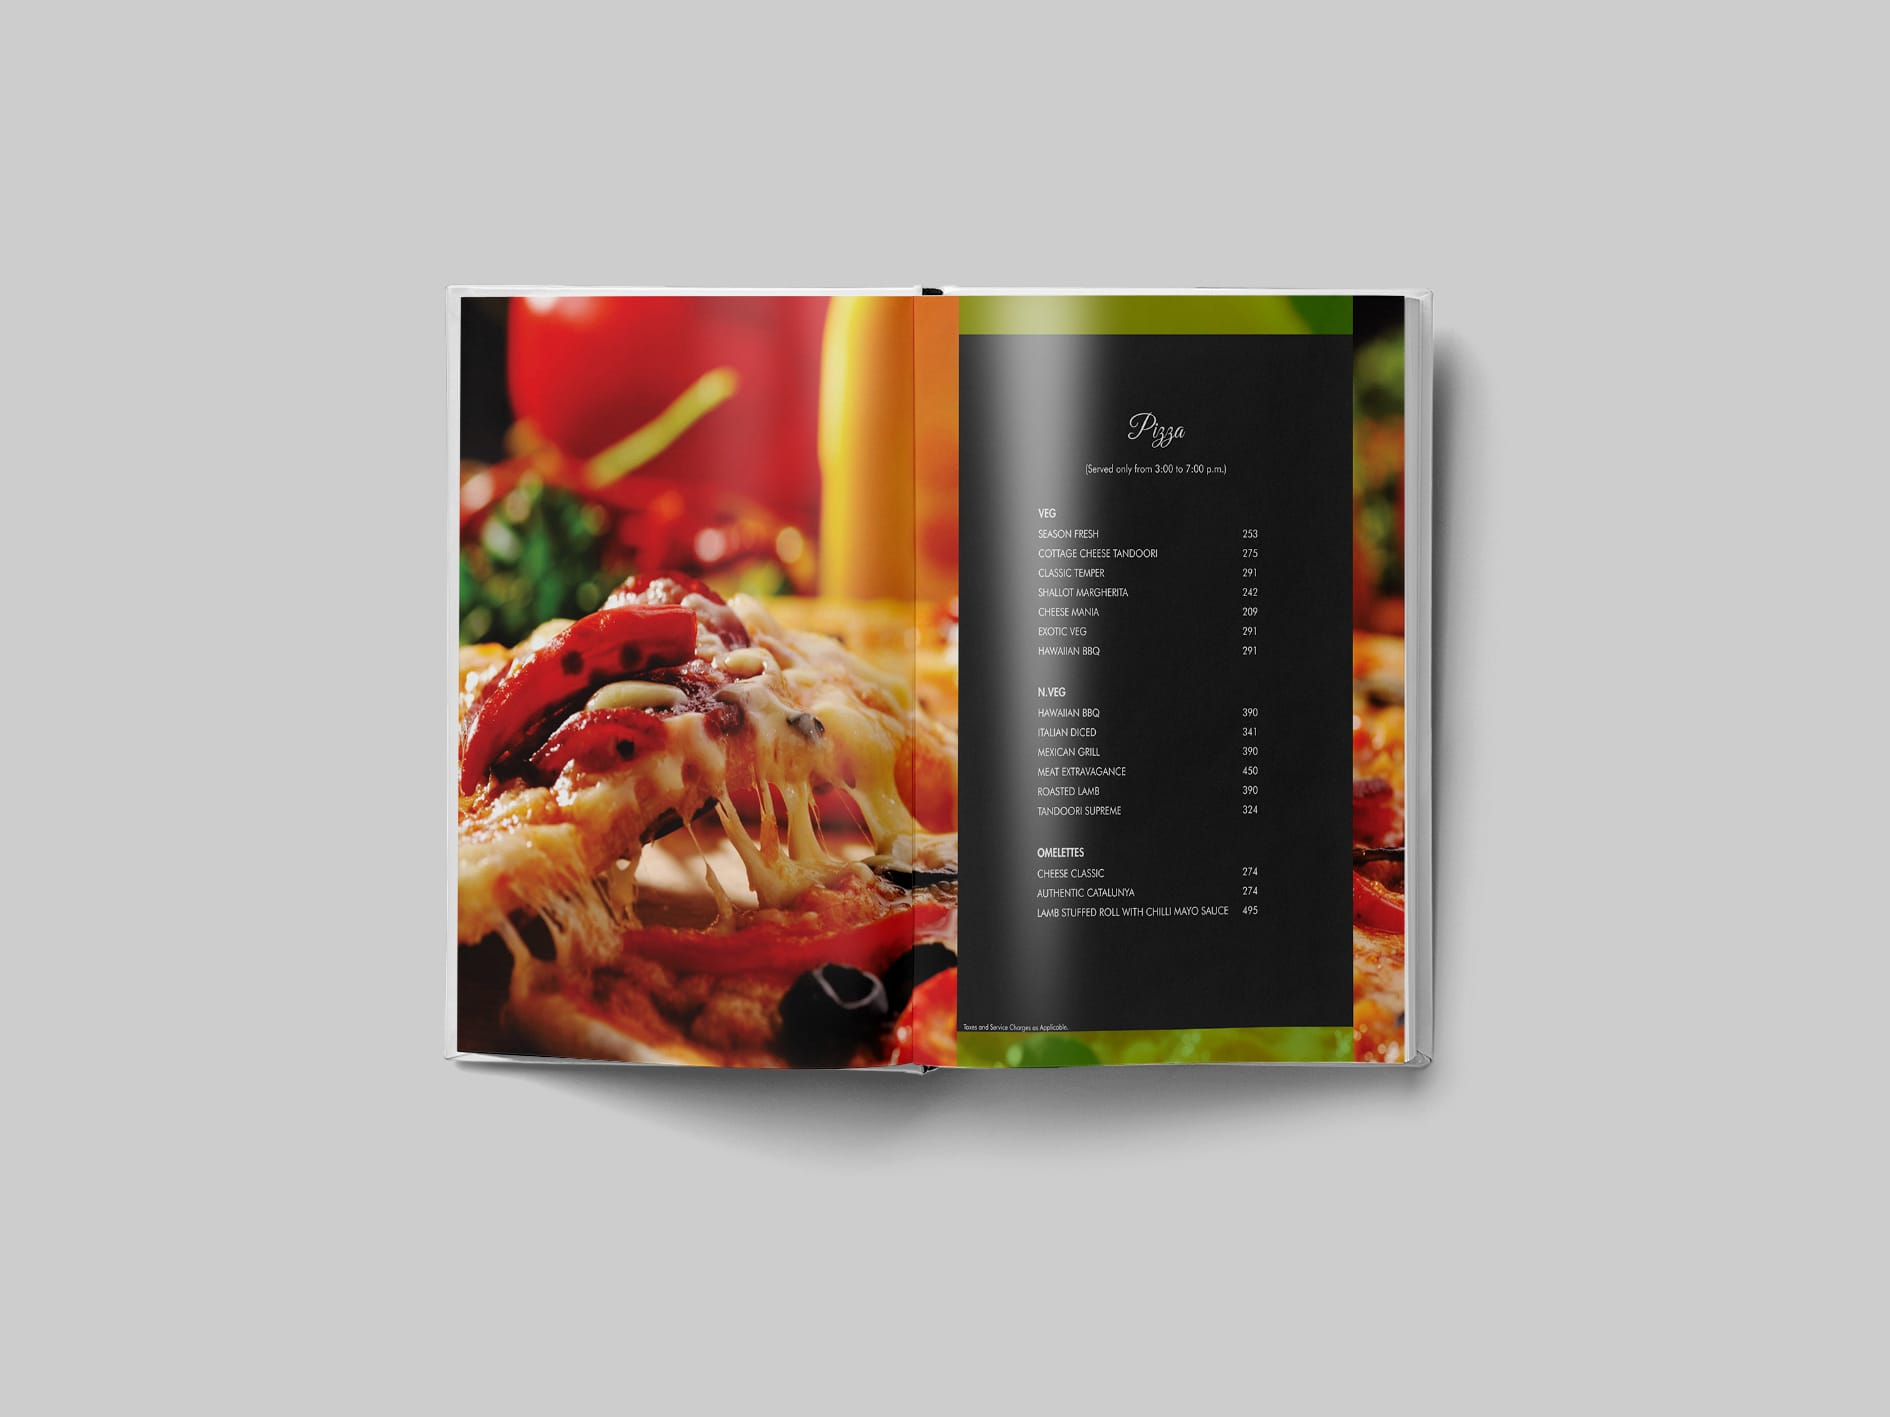 rnattenmpqf-best-menu-design,-cafe-sanwicho,-what's-in-a-name-creatives,-ad-agency-(2)-min